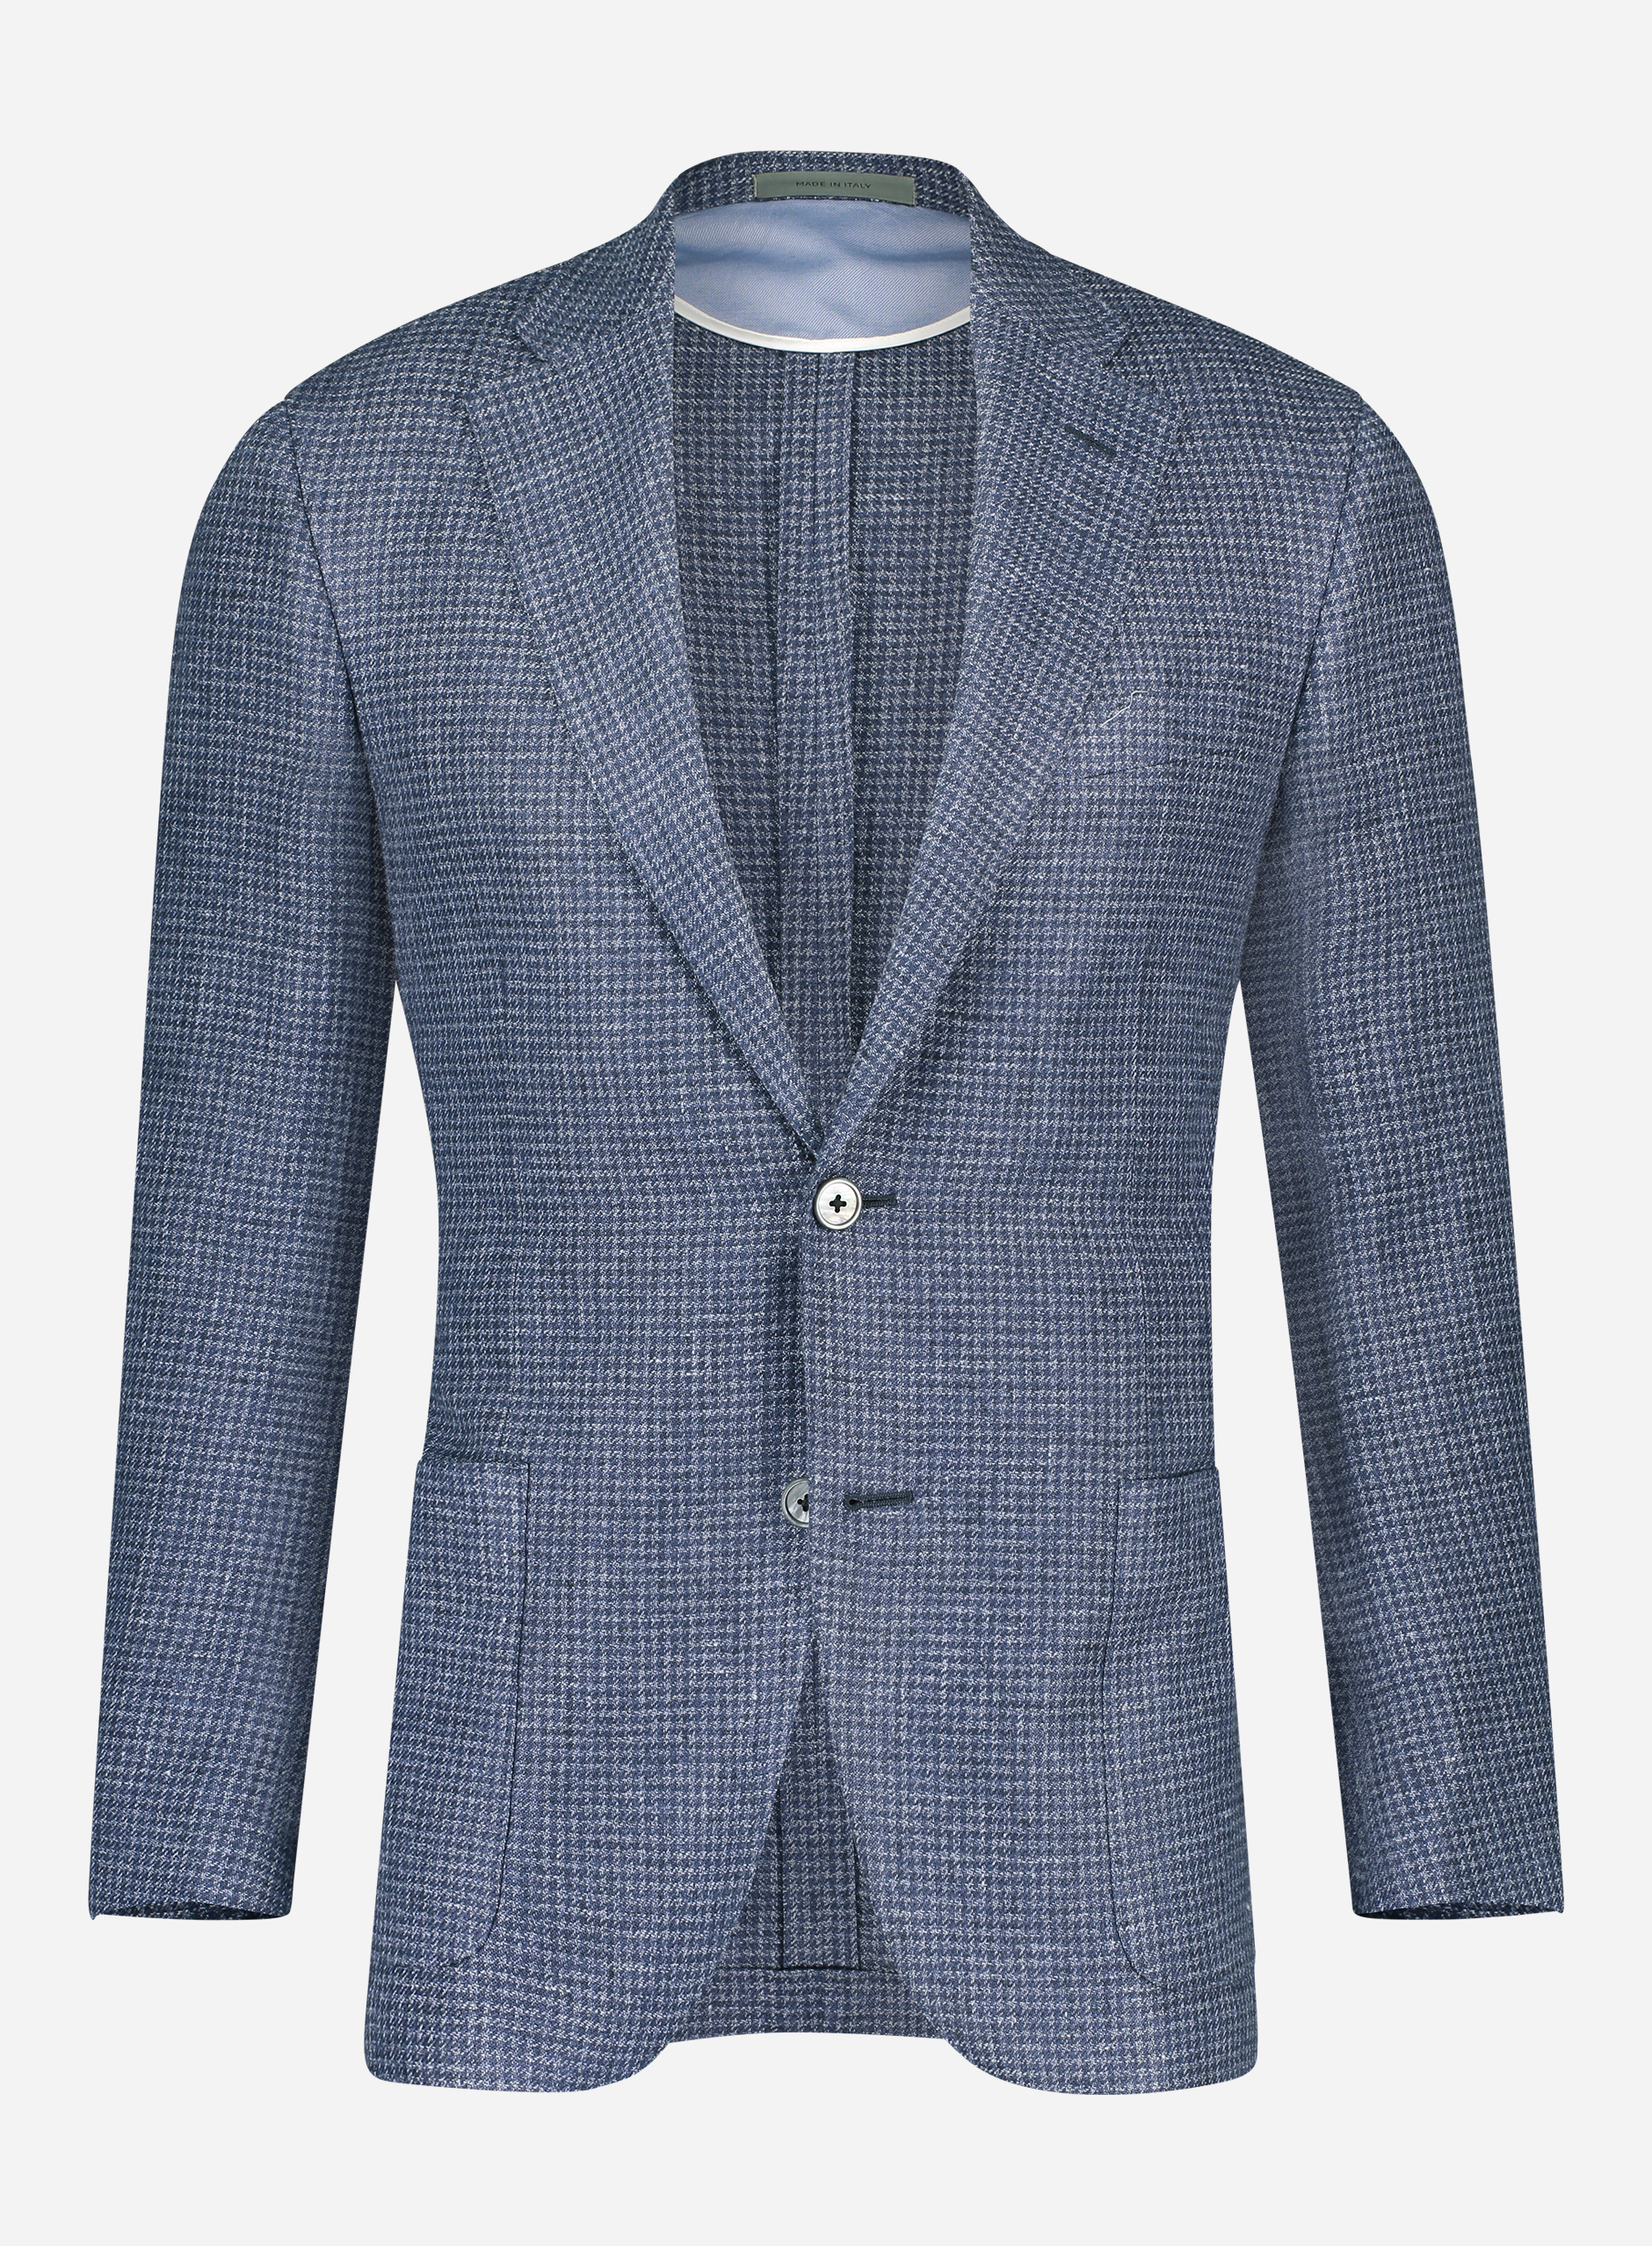 Corneliani Regular-fit jasje in linnen-wol blend Blauw